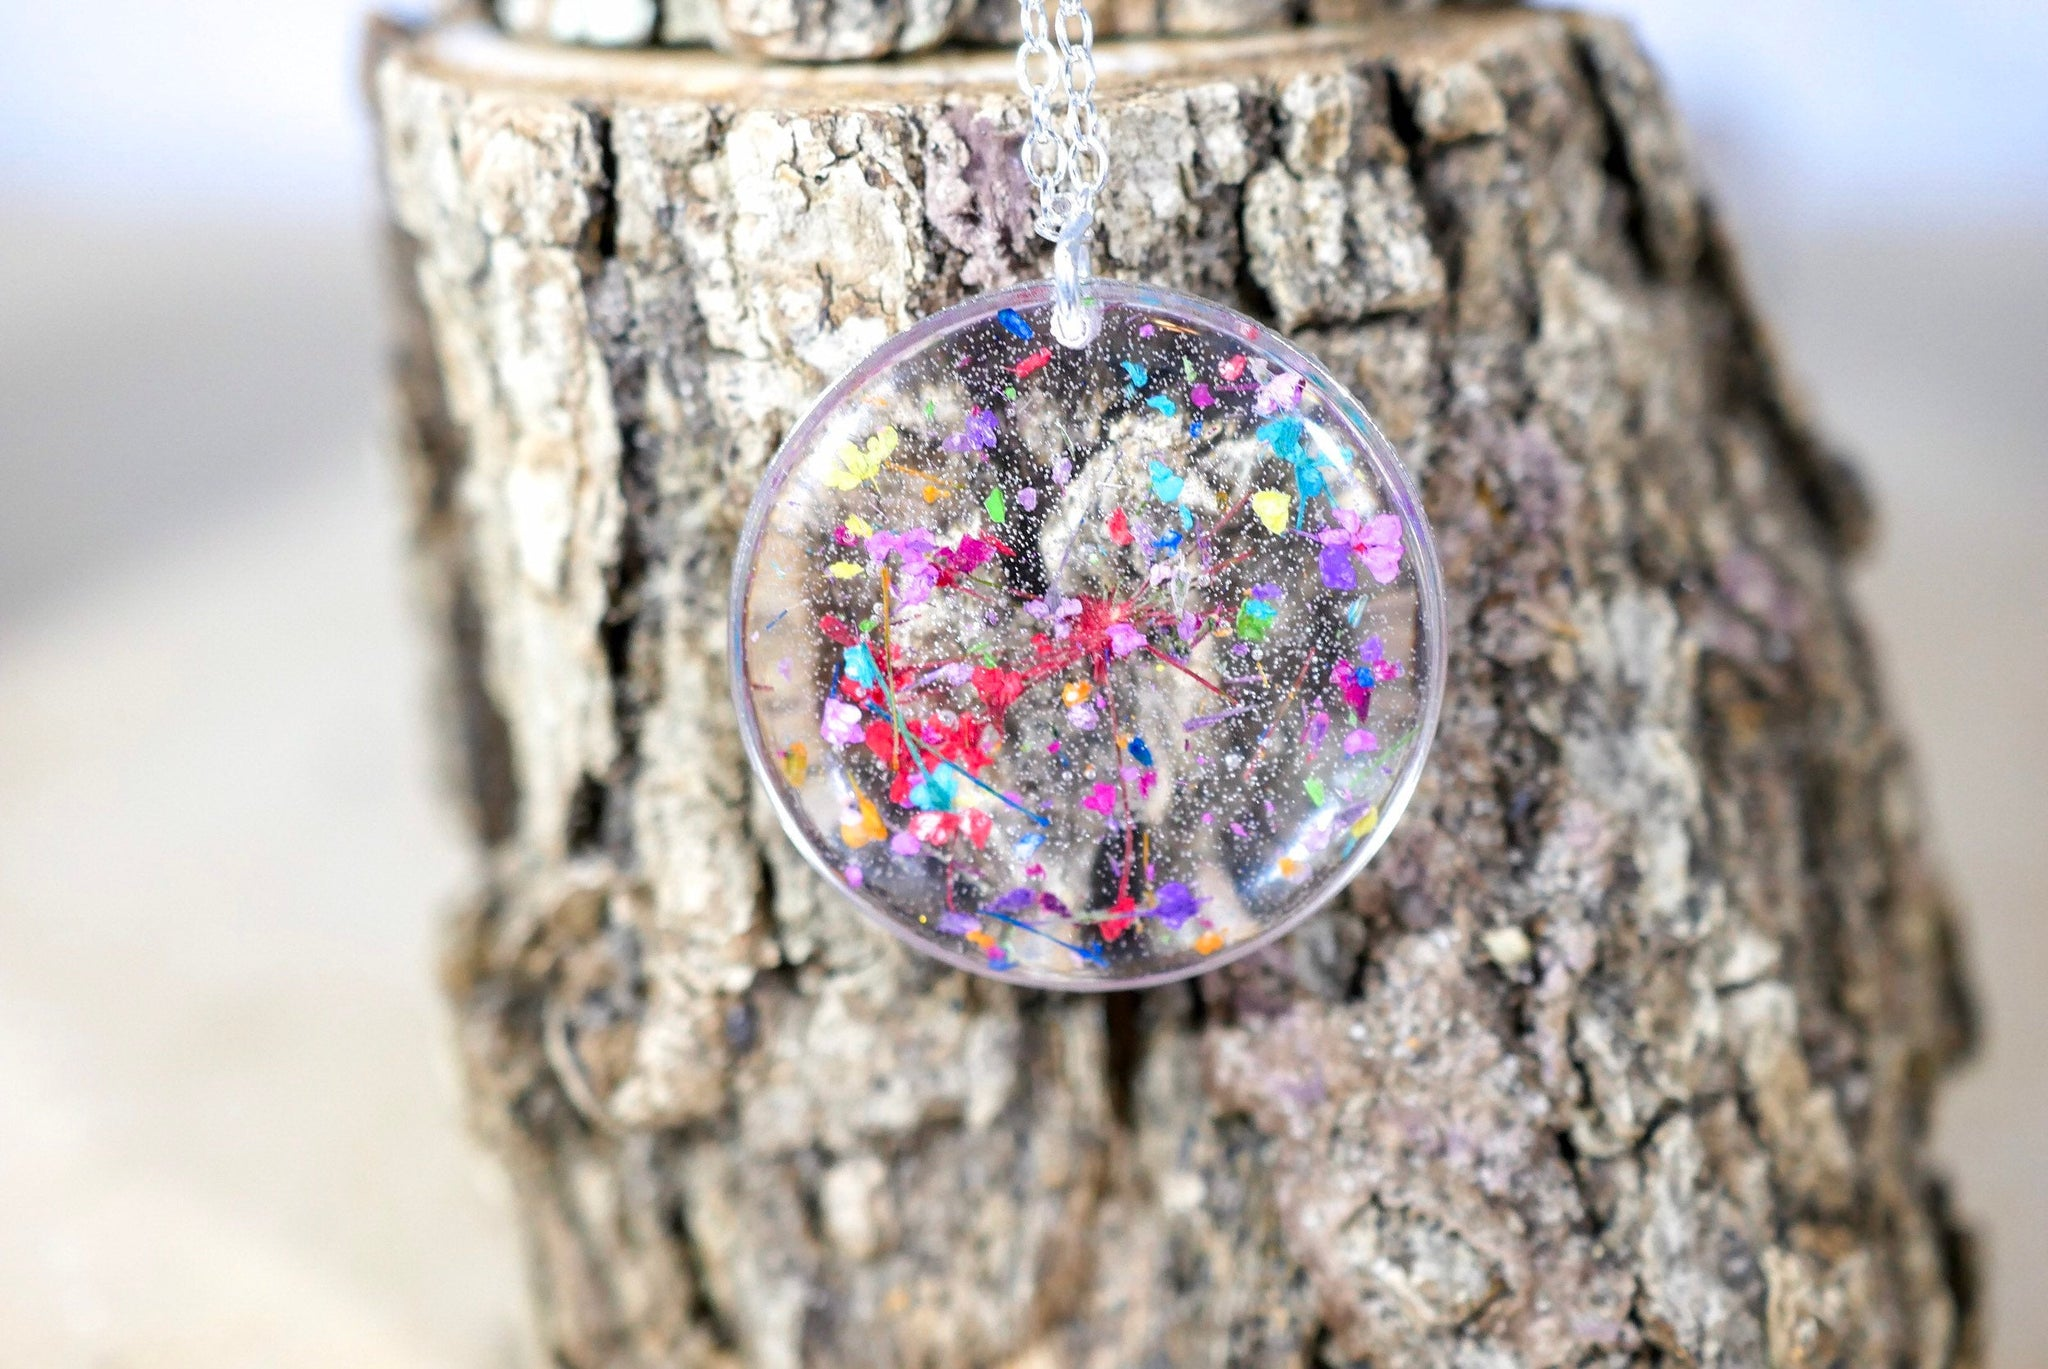 Pressed Flowers in resin Necklace, Pressed flower jewelry, Queen annes lace, preserved nature terrarium pendant, Flower confetti